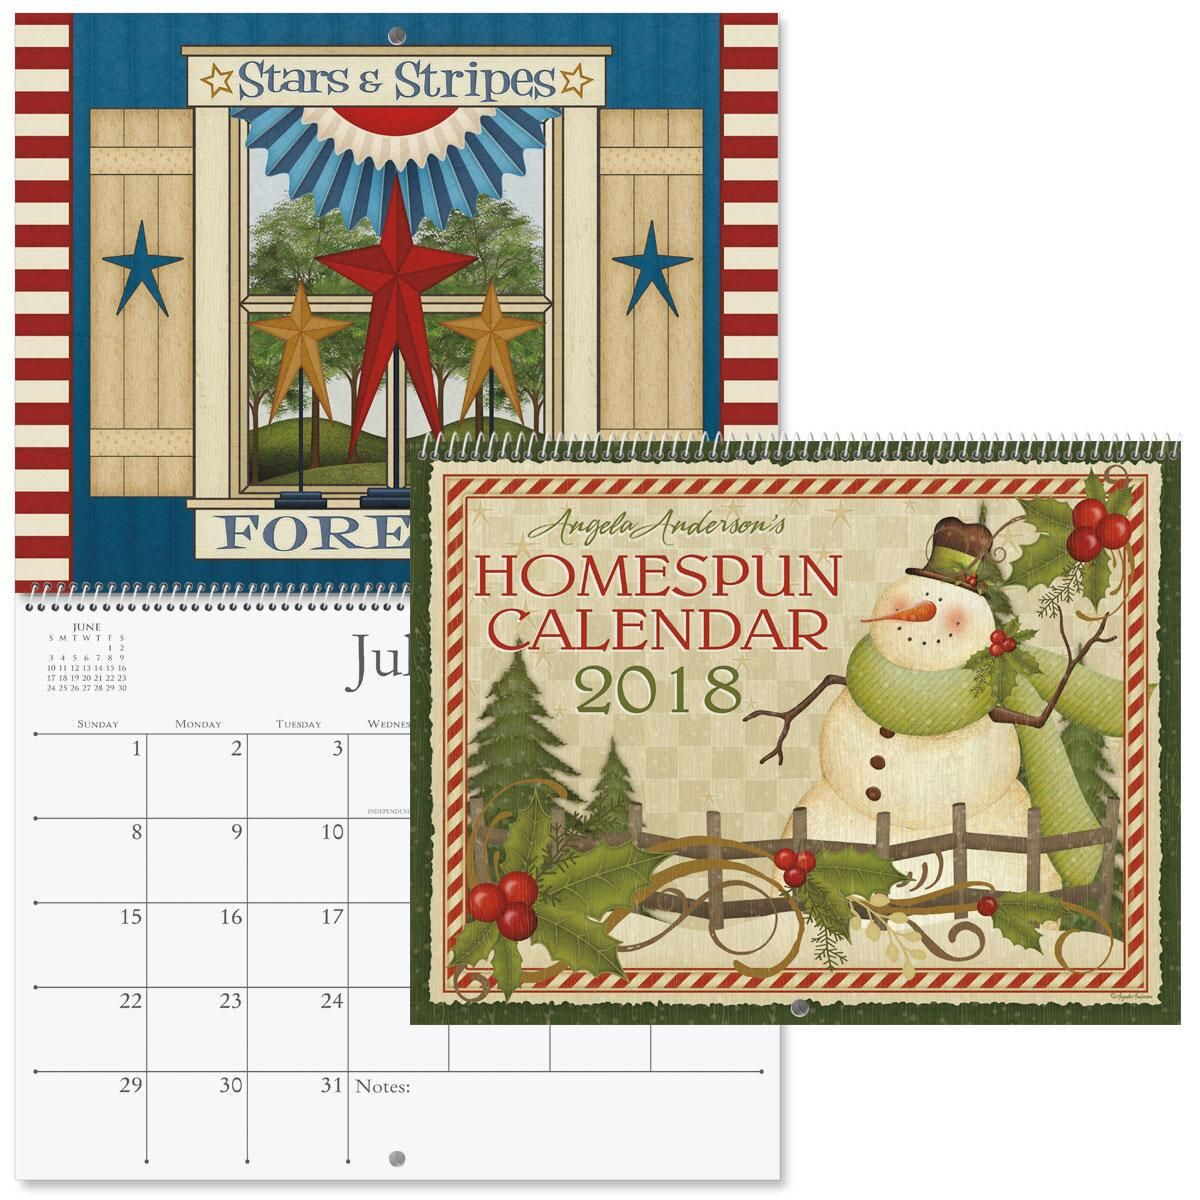 2018 Angela Anderson's Homespun Wall Calendar